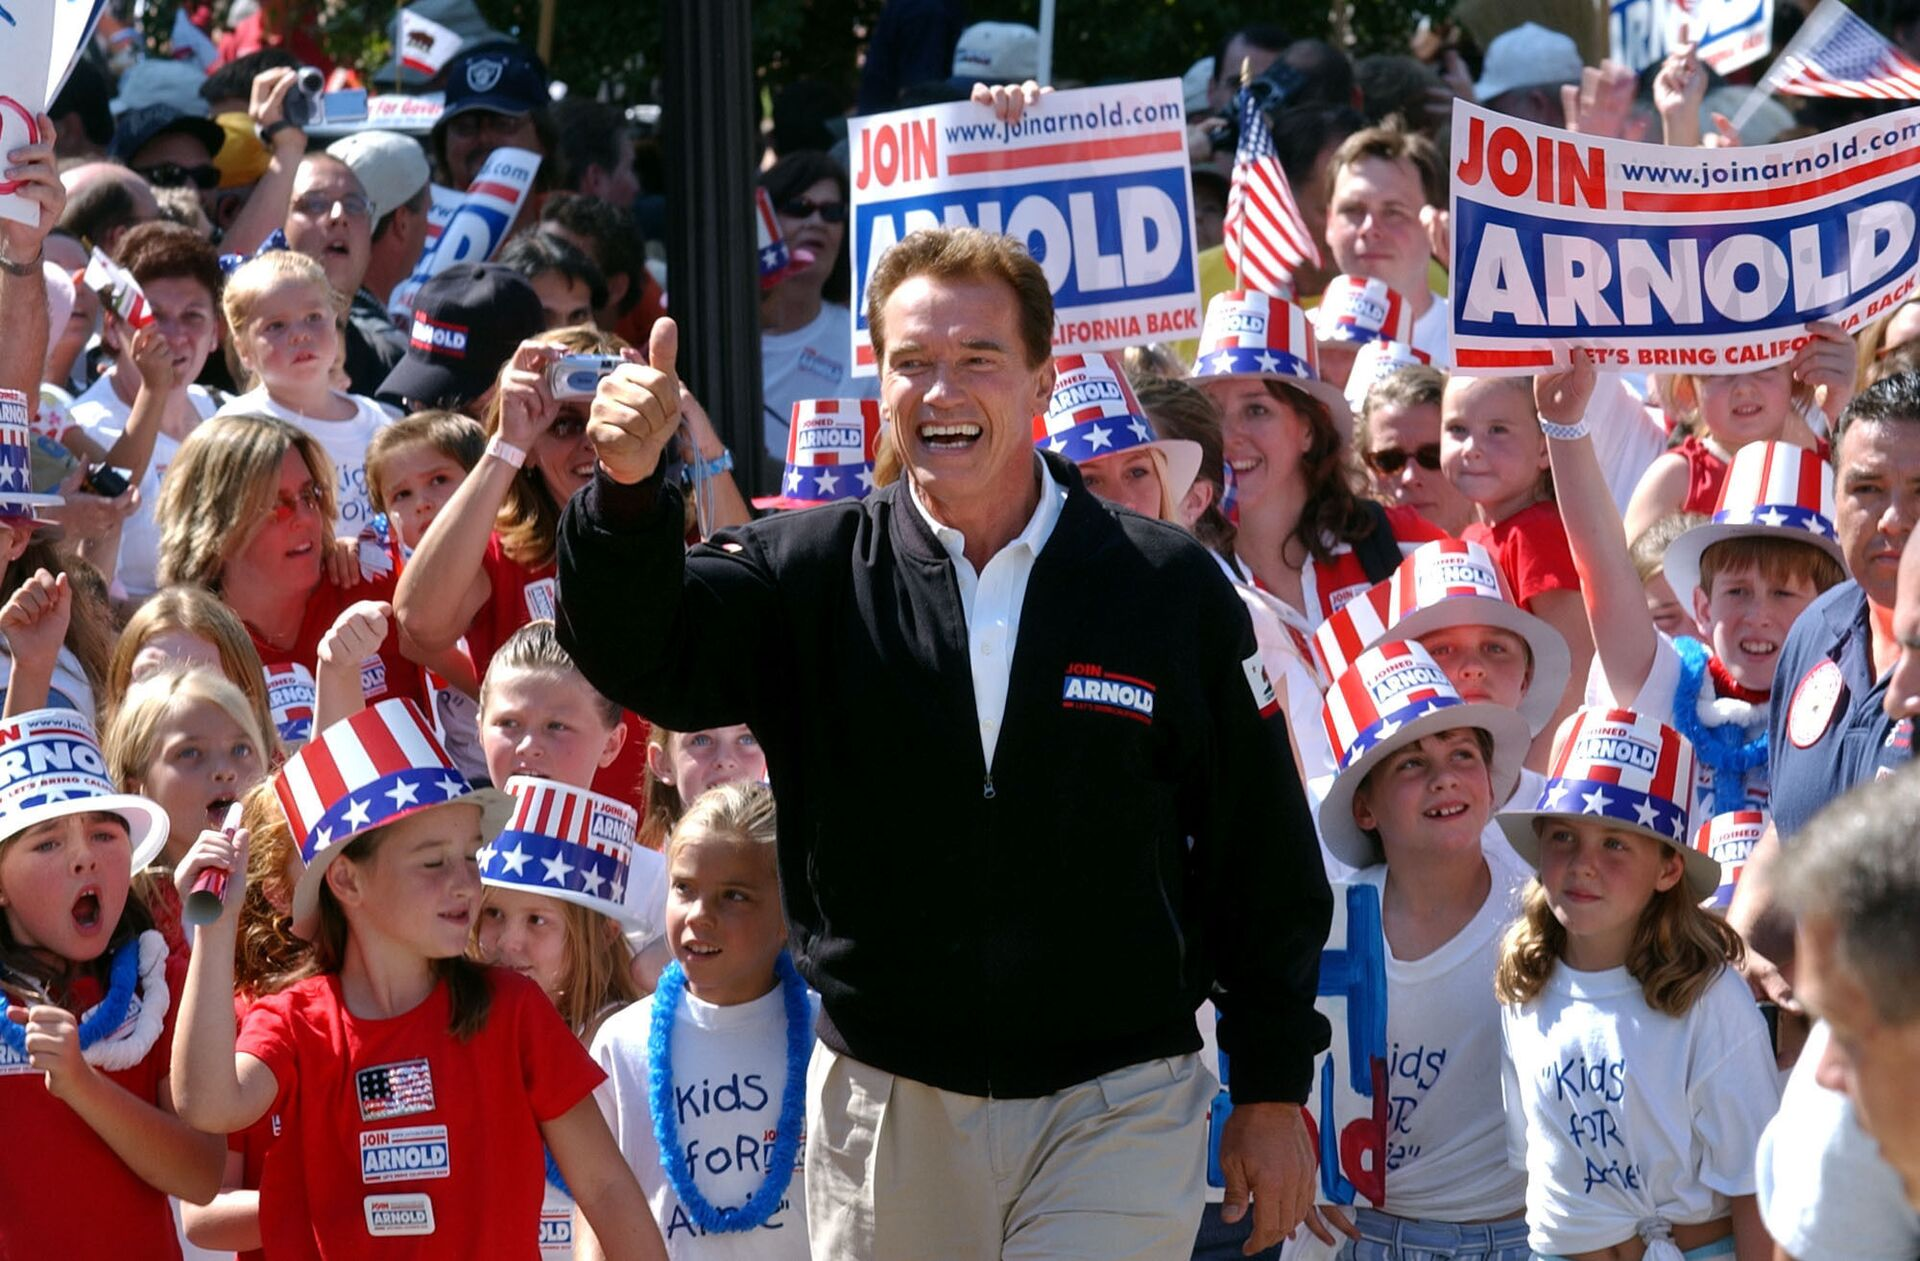 In this Oct. 5, 2003, file photo, Republican candidate for California governor Arnold Schwarzenegger walks up the steps to the state Capitol surrounded by children and waving to supporters during a campaign rally in Sacramento, Calif. California Gov. Gavin Newsom is facing a possible recall election as the nation's most populous state struggles to emerge from the coronavirus crisis - Sputnik International, 1920, 14.09.2021